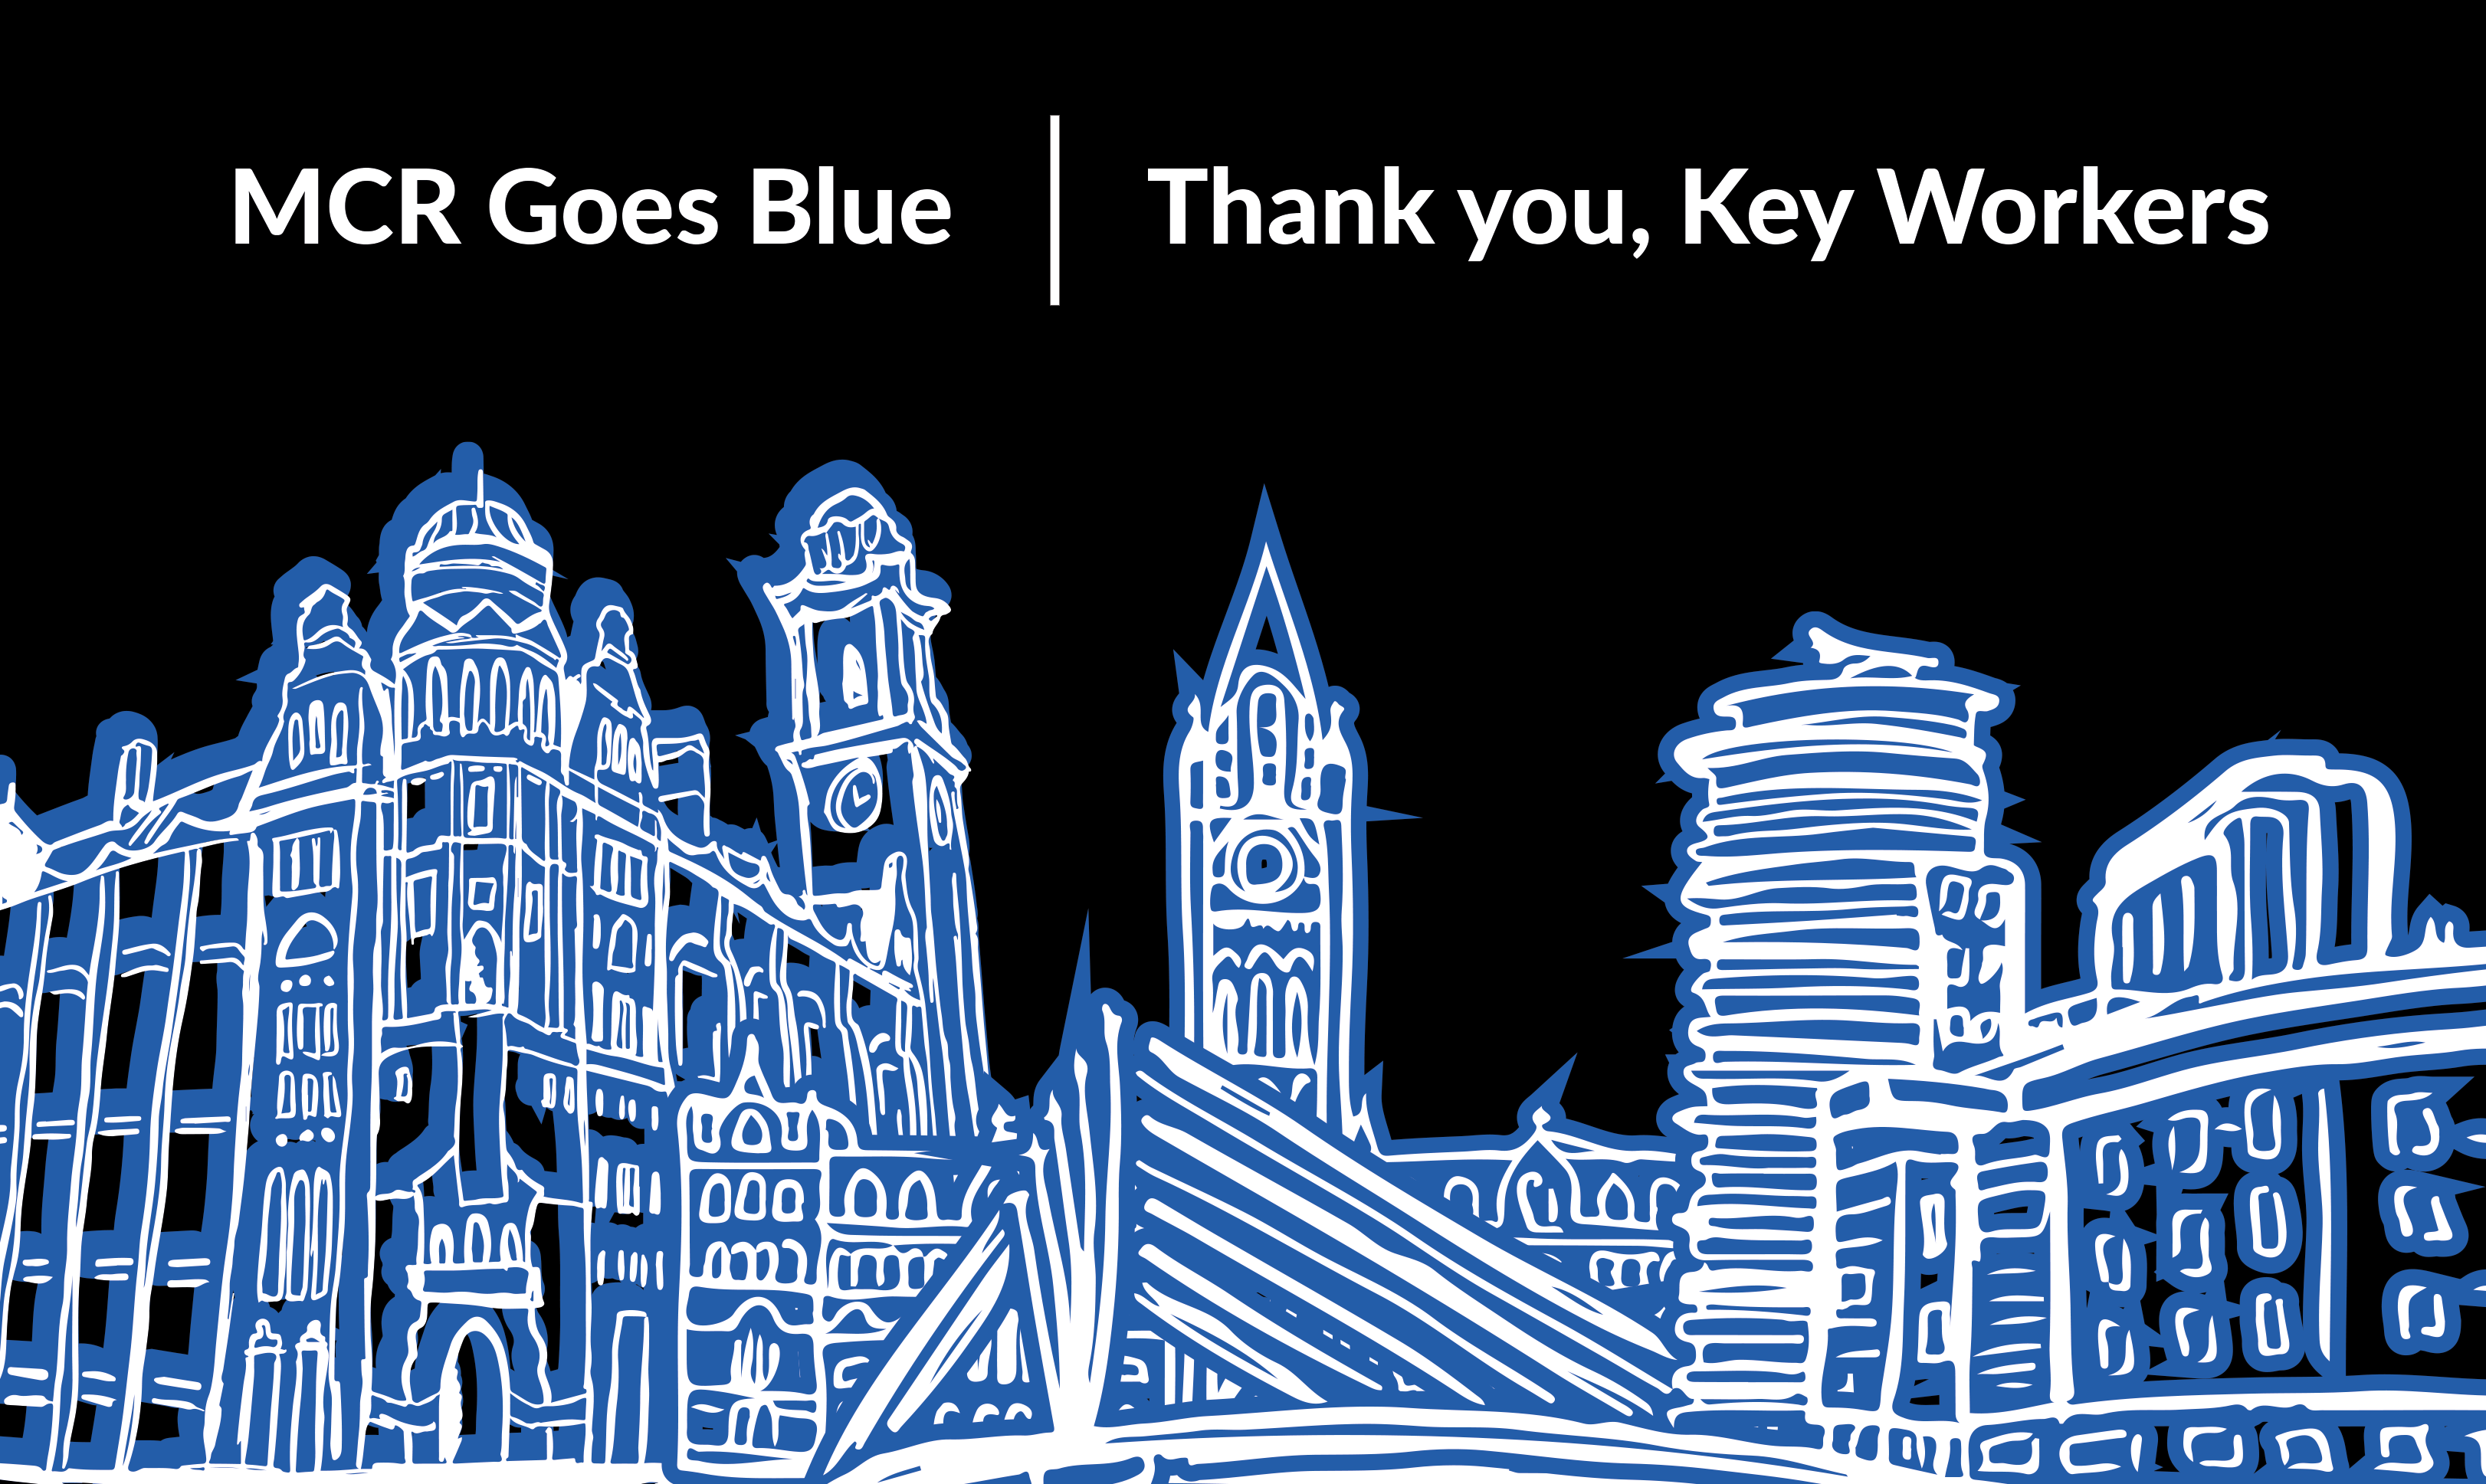 MCR GOES BLUE thankyou key workers